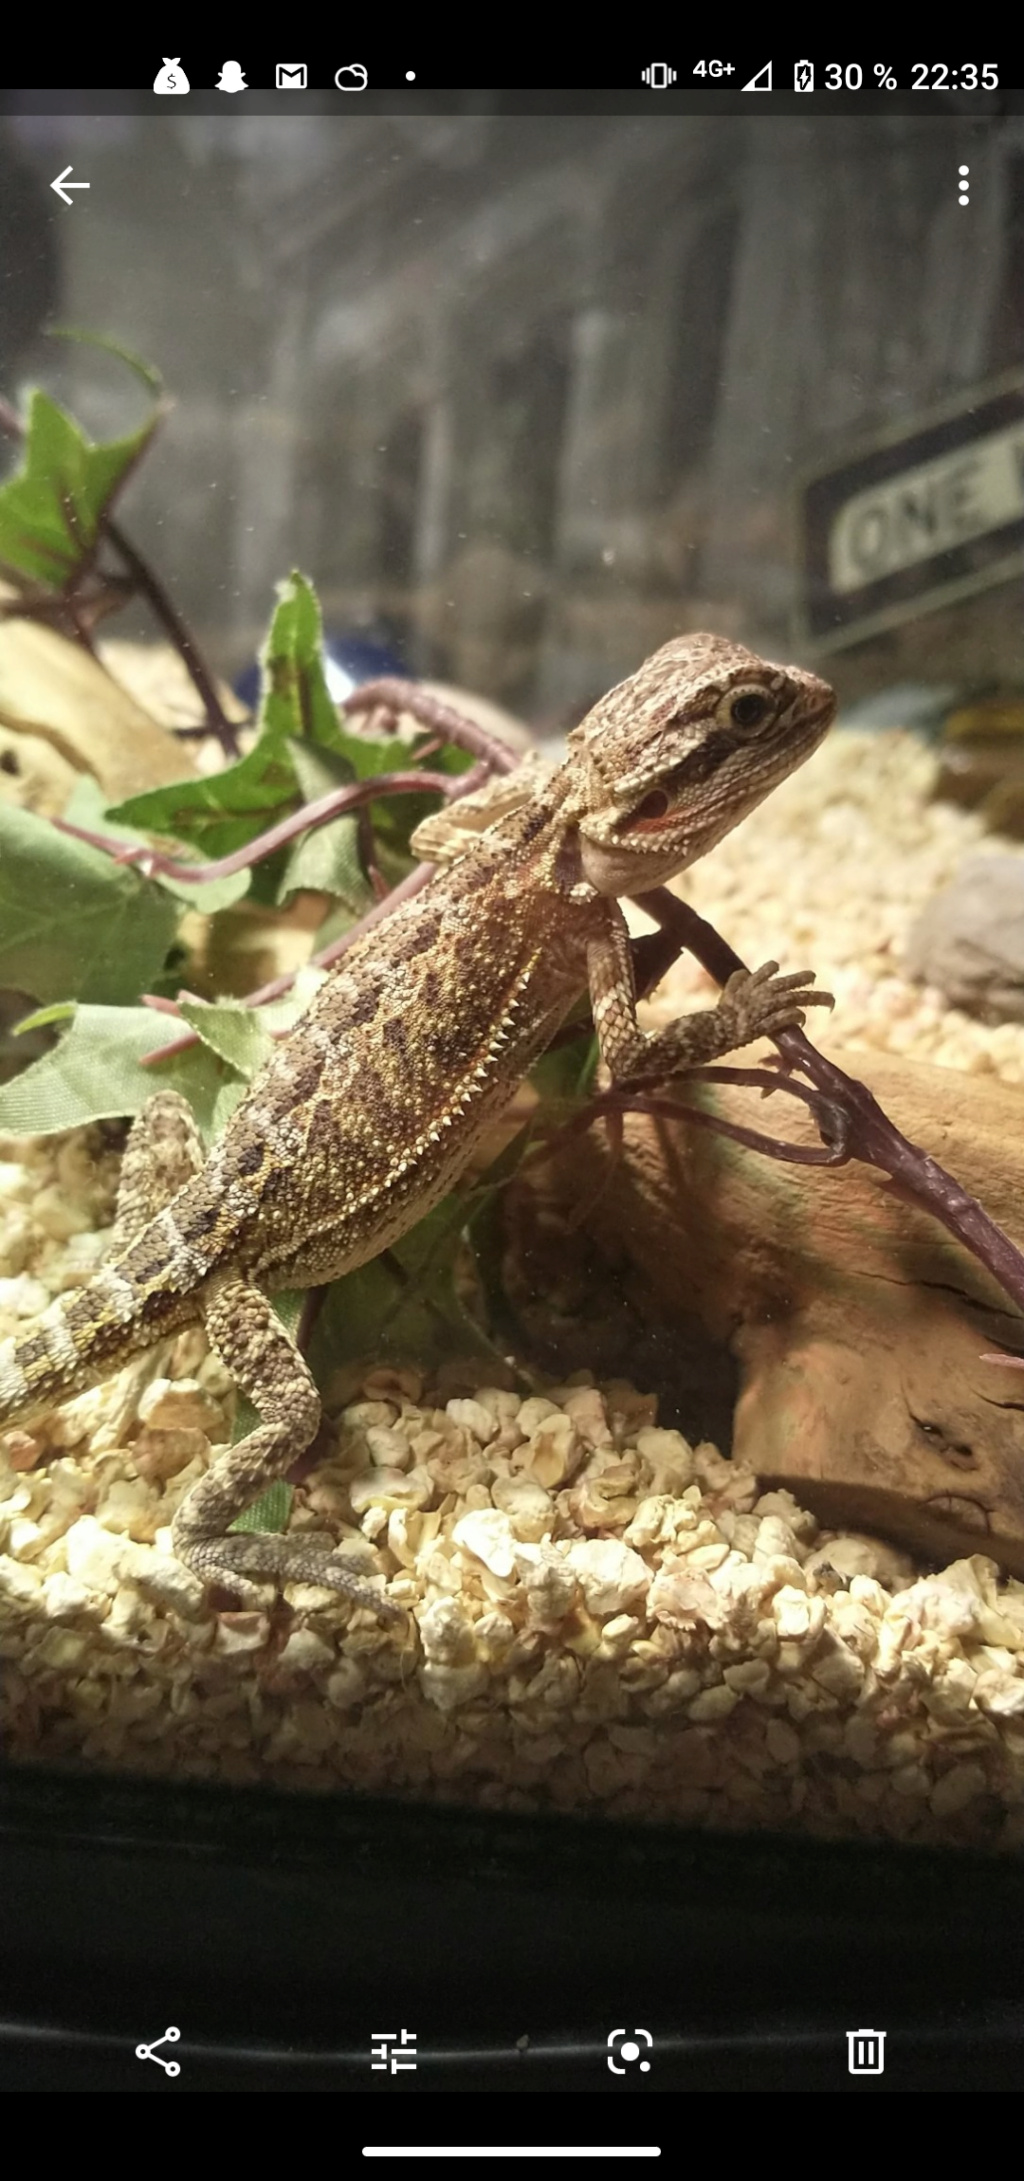 Mon Pogona Screen13